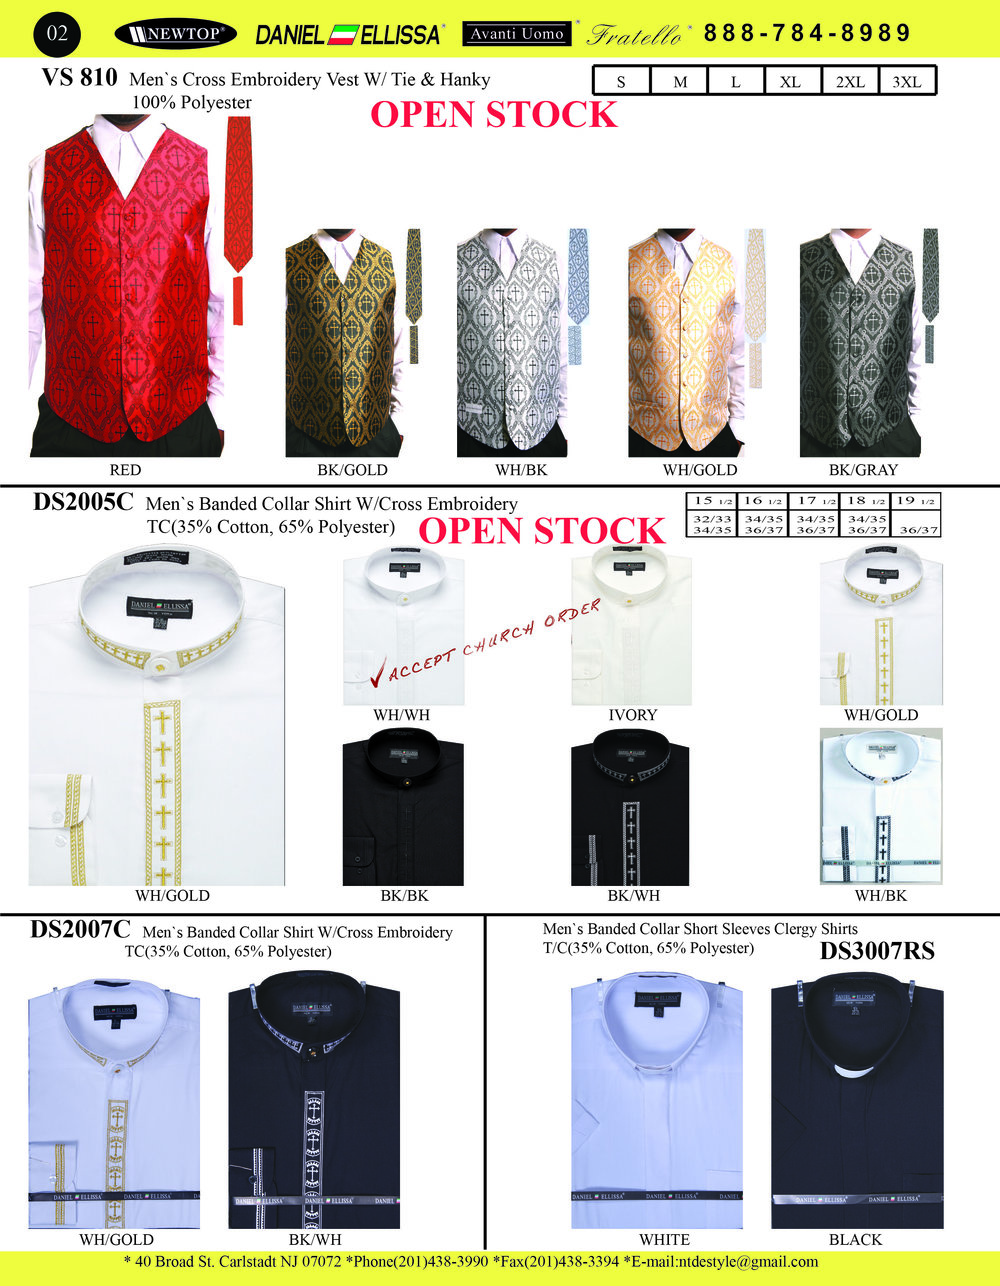 PAGE - 02(VS810-DS2005 DS2007 DS3007RS).jpg